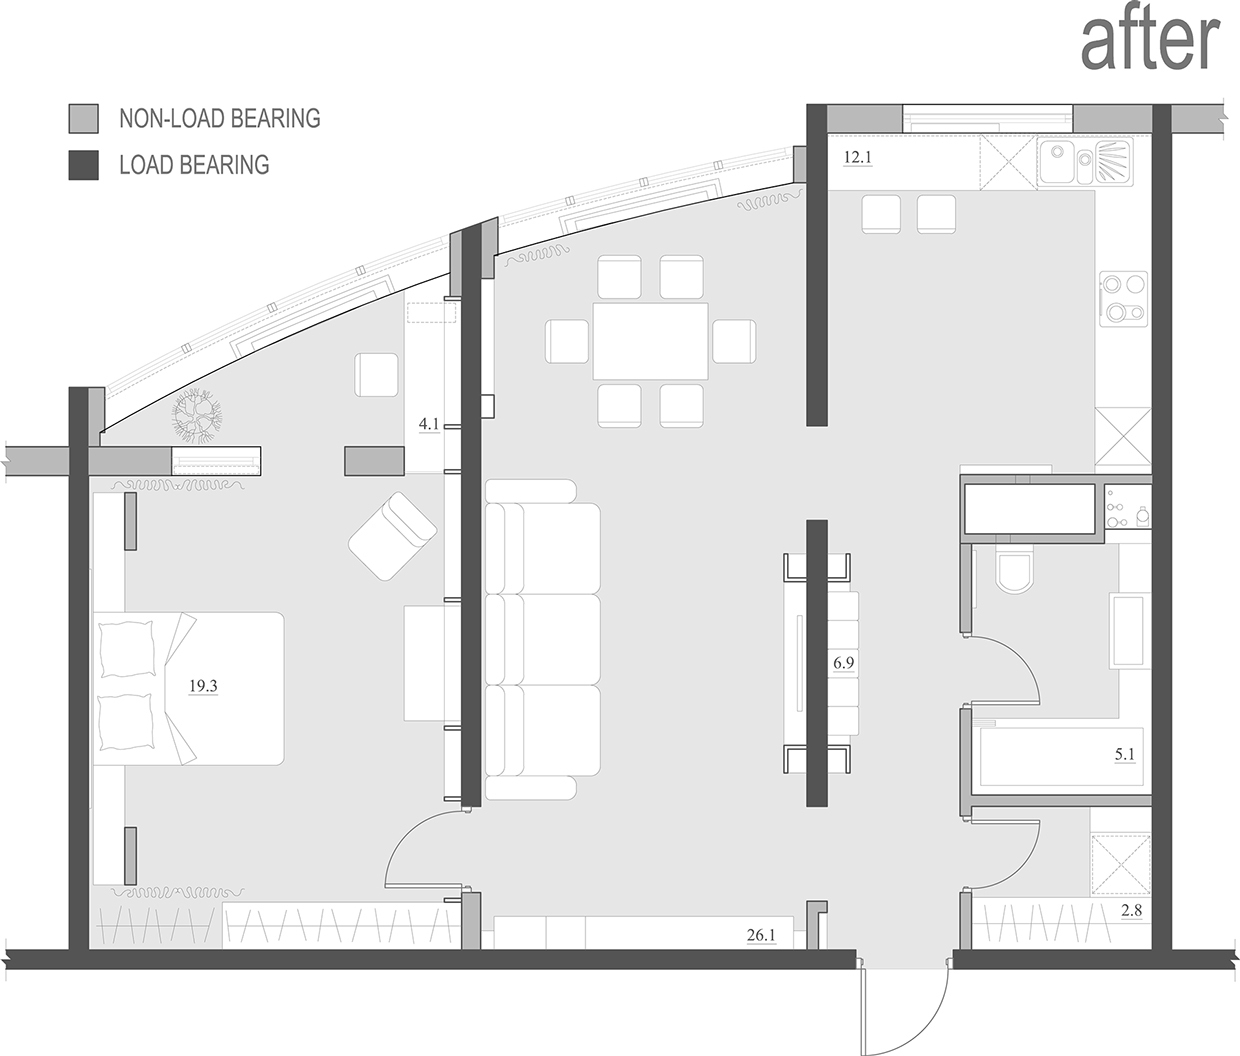 2 single bedroom apartment designs under 75 square meters for 2 bedroom apartment layout ideas